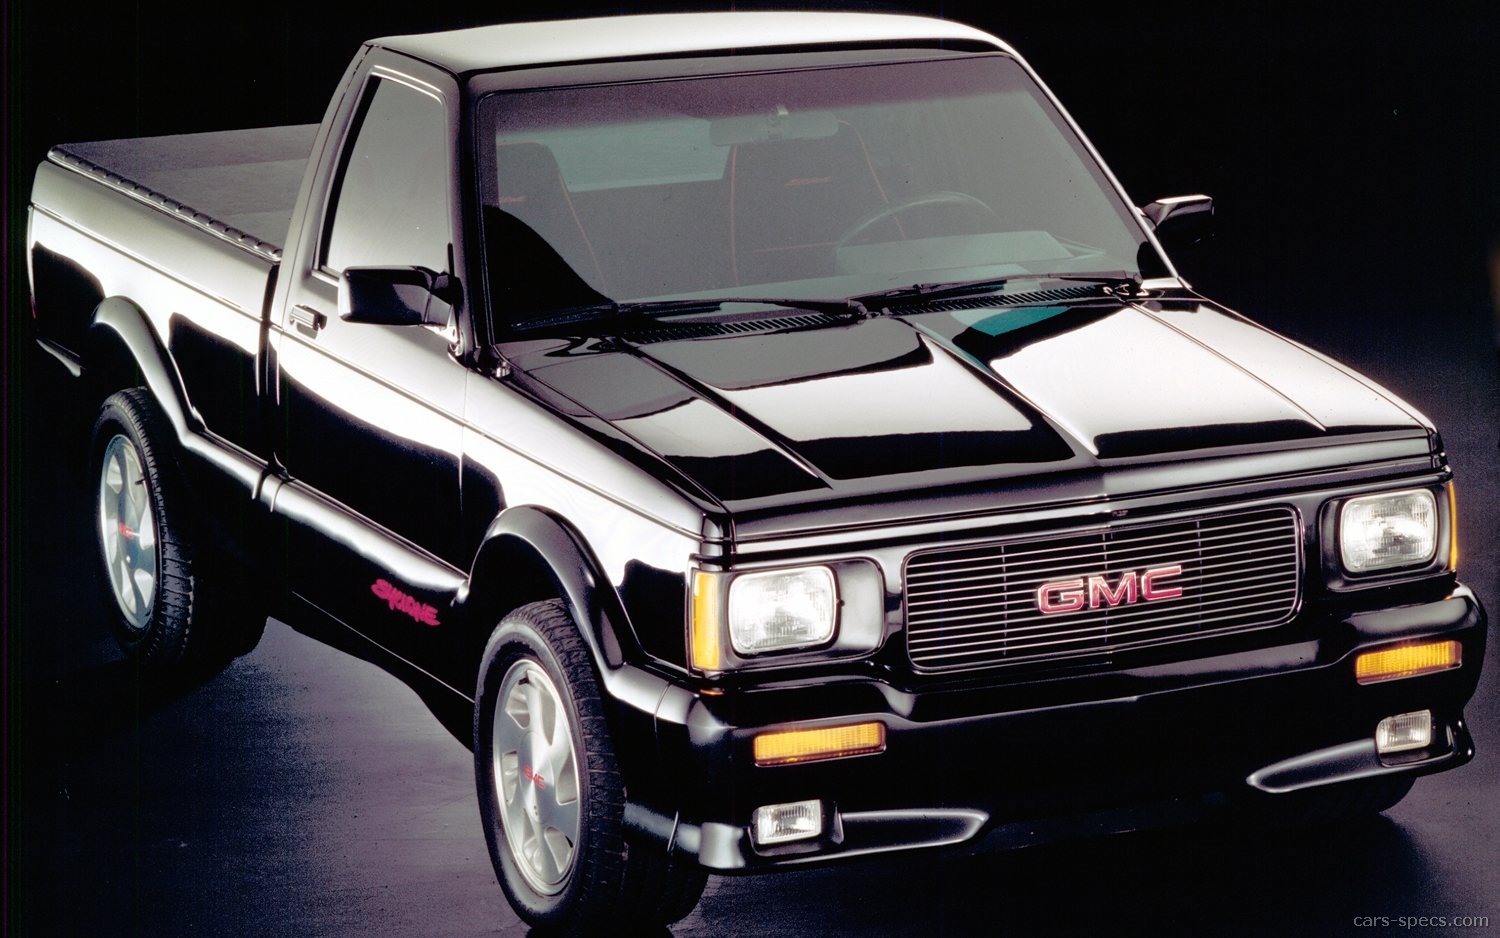 1992 Gmc Sonoma Syclone Specifications  Pictures  Prices